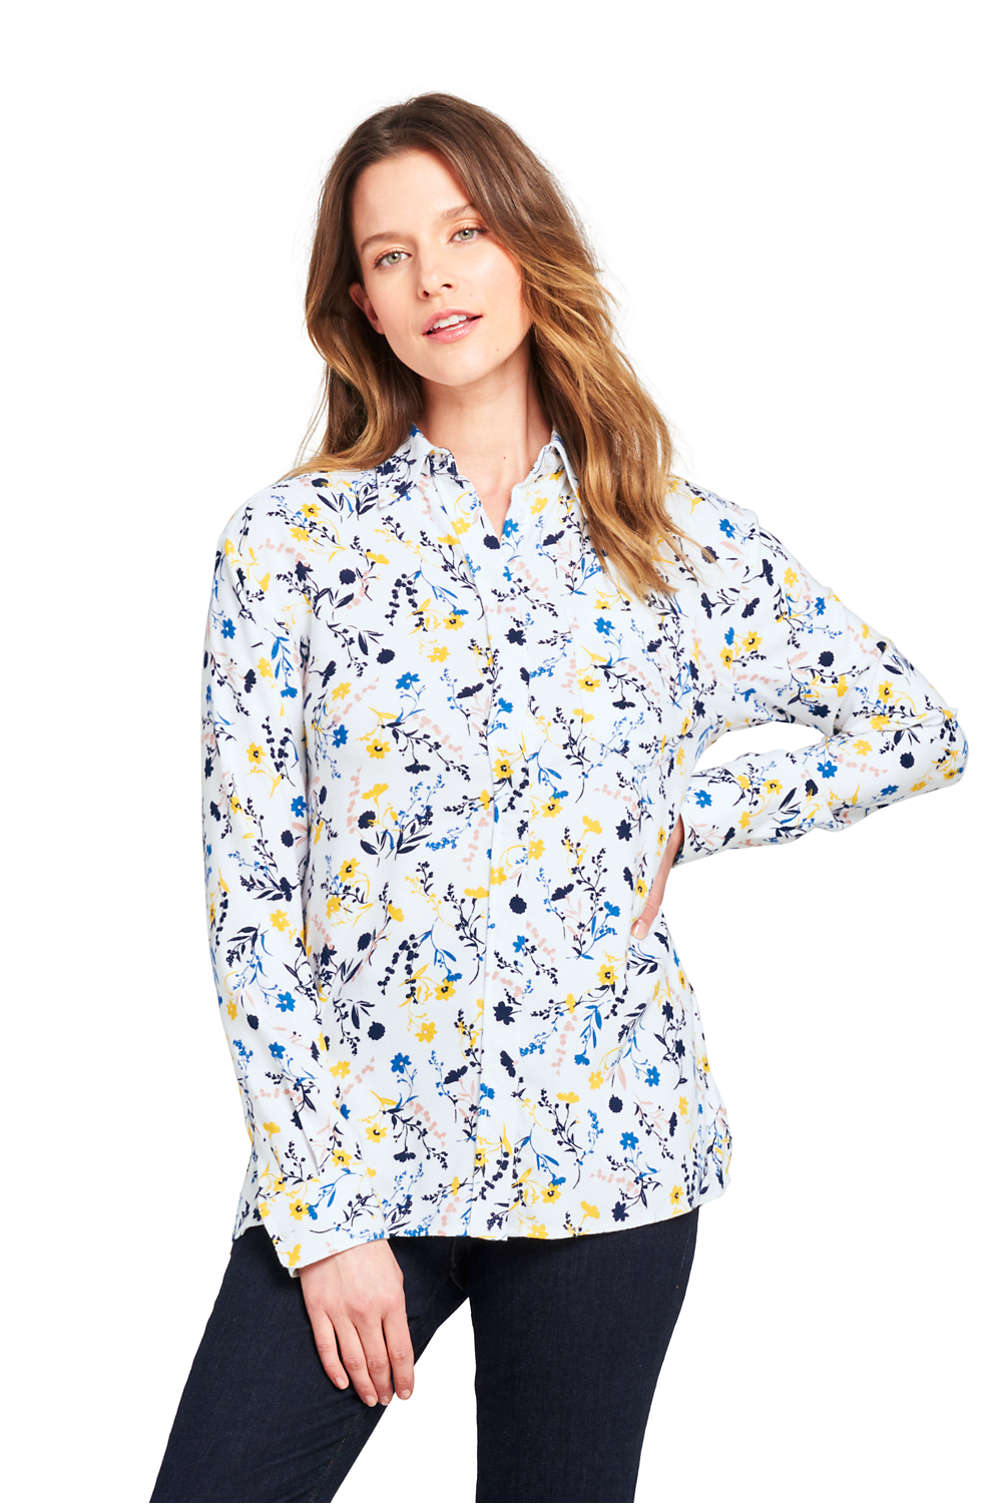 Womens Brushed Rayon Collared Shirt From Lands End